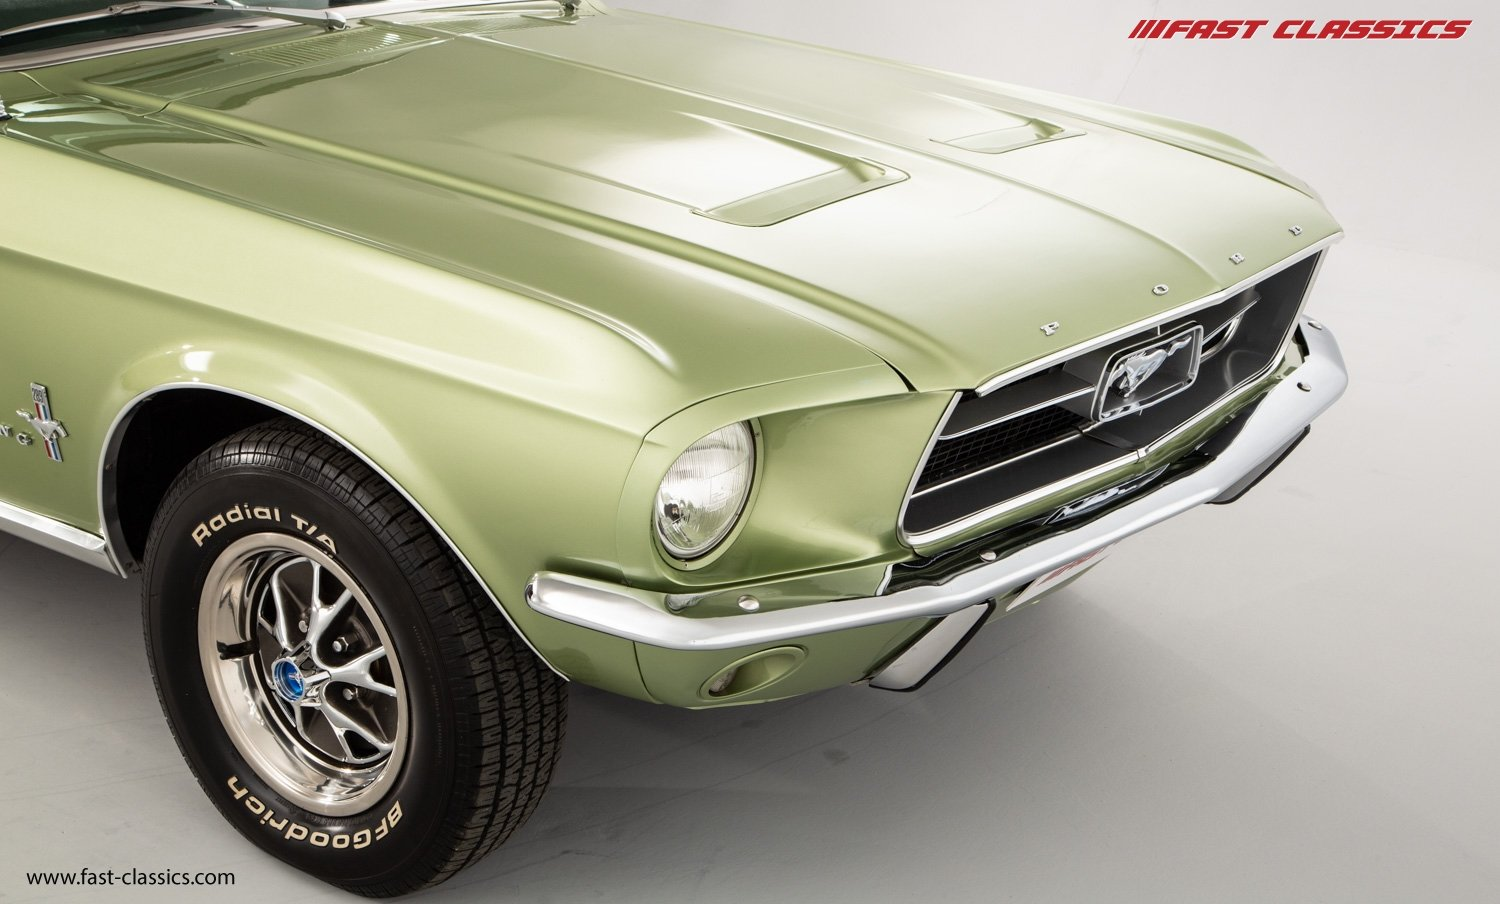 FORD MUSTANG CONVERTIBLE // 1967 FACTORY 4-SPEED MANUAL For Sale (picture 6 of 23)